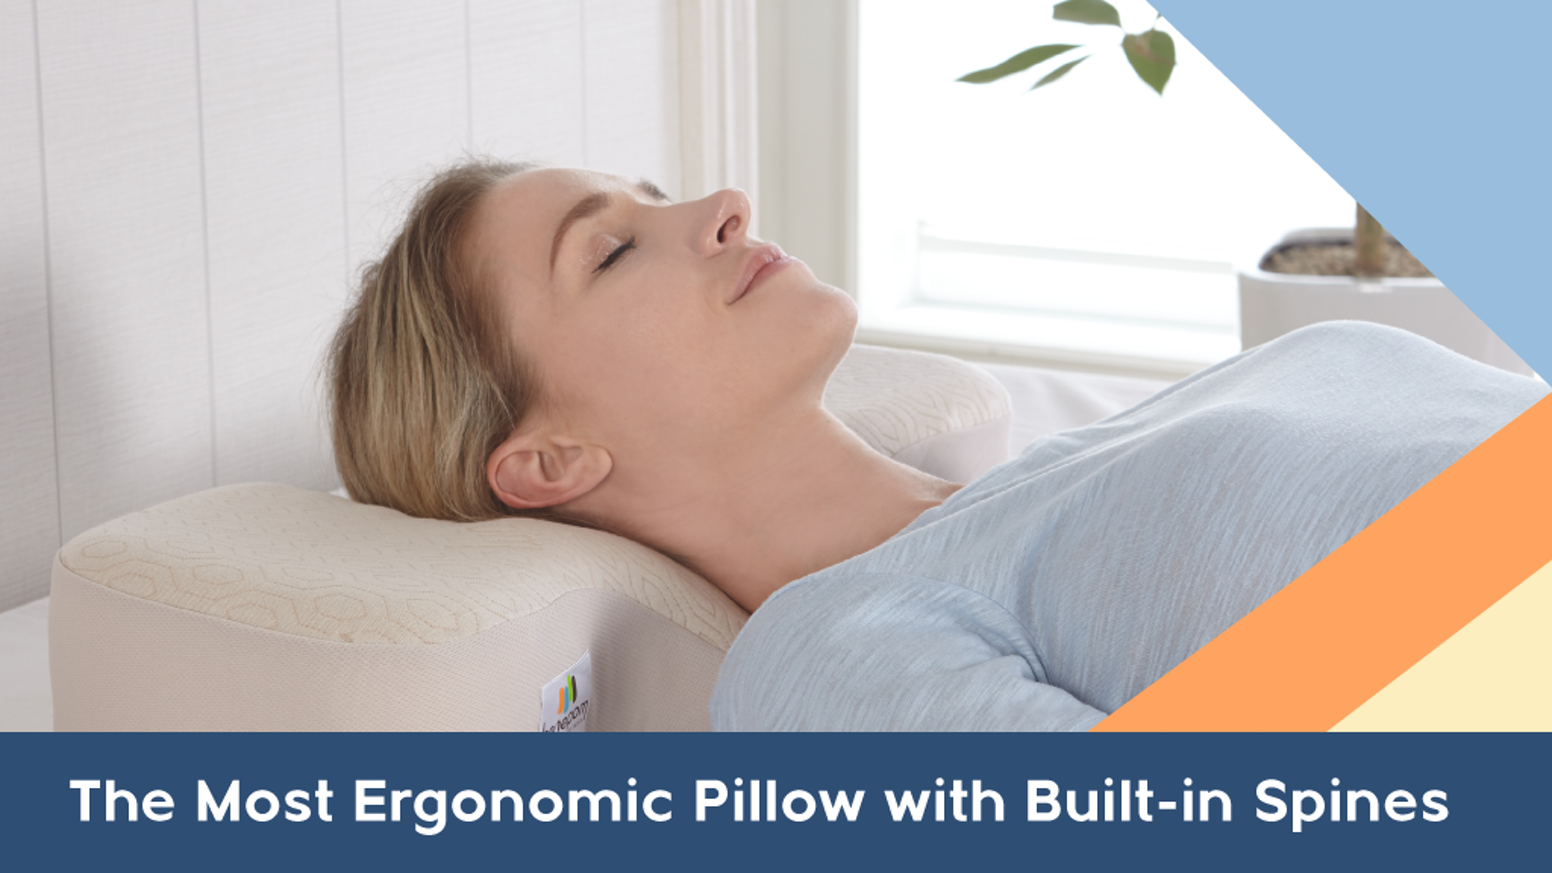 With the built-in spines inside the ergonomic Dual Plus Pillow, you can fall asleep effortlessly within minutes! All Night Comfort!